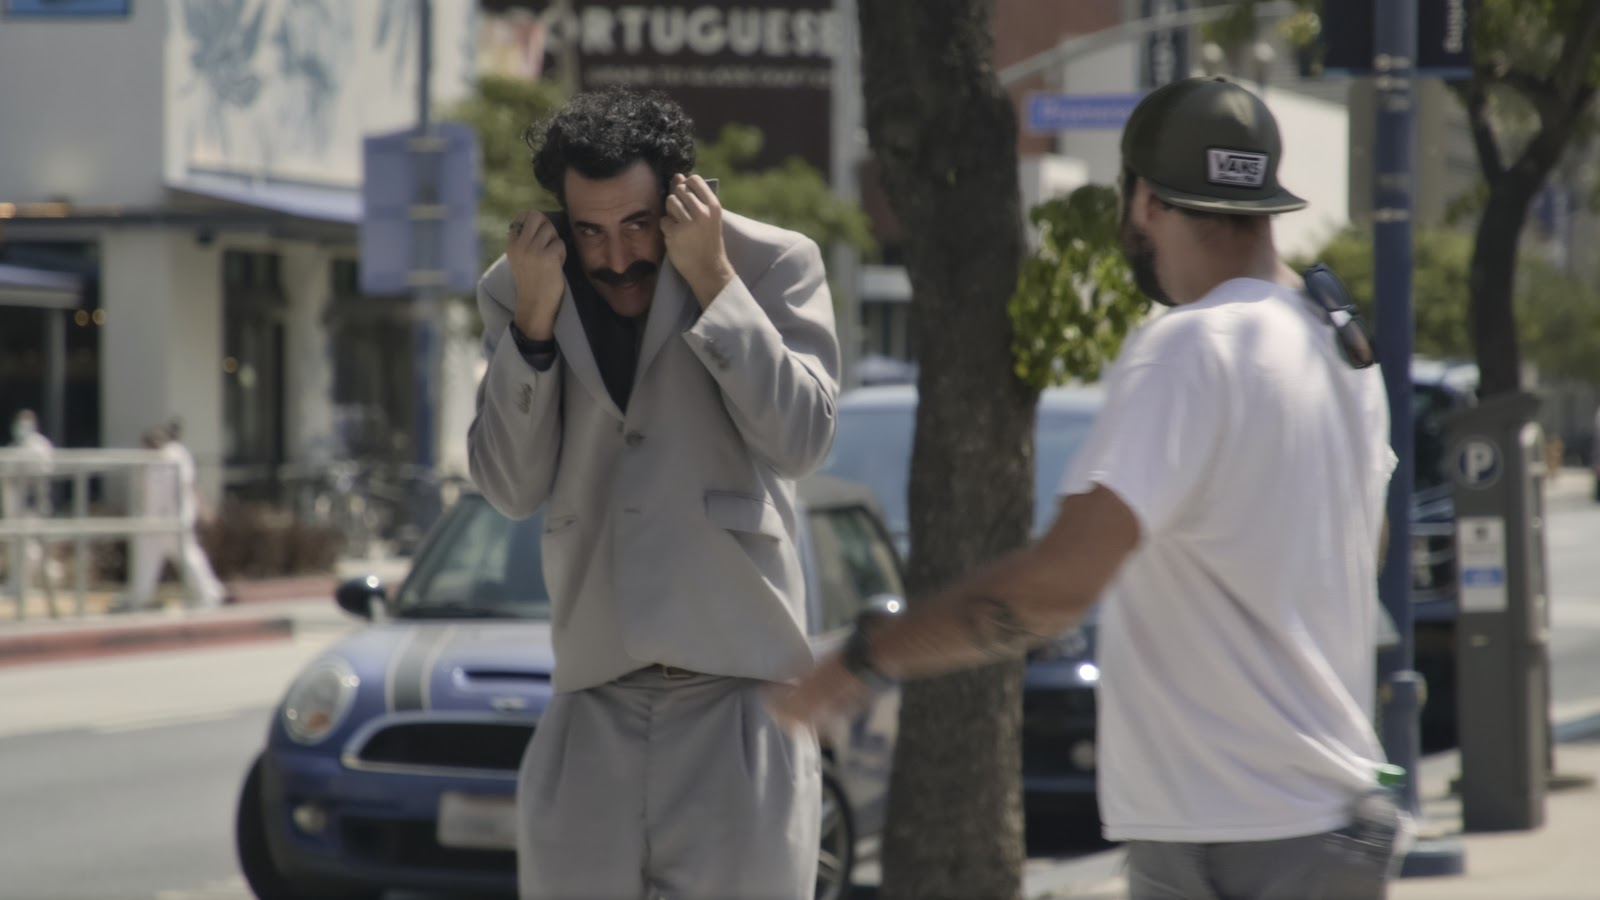 Borat Subsequent Moviefilm - How outrageous is the new film?